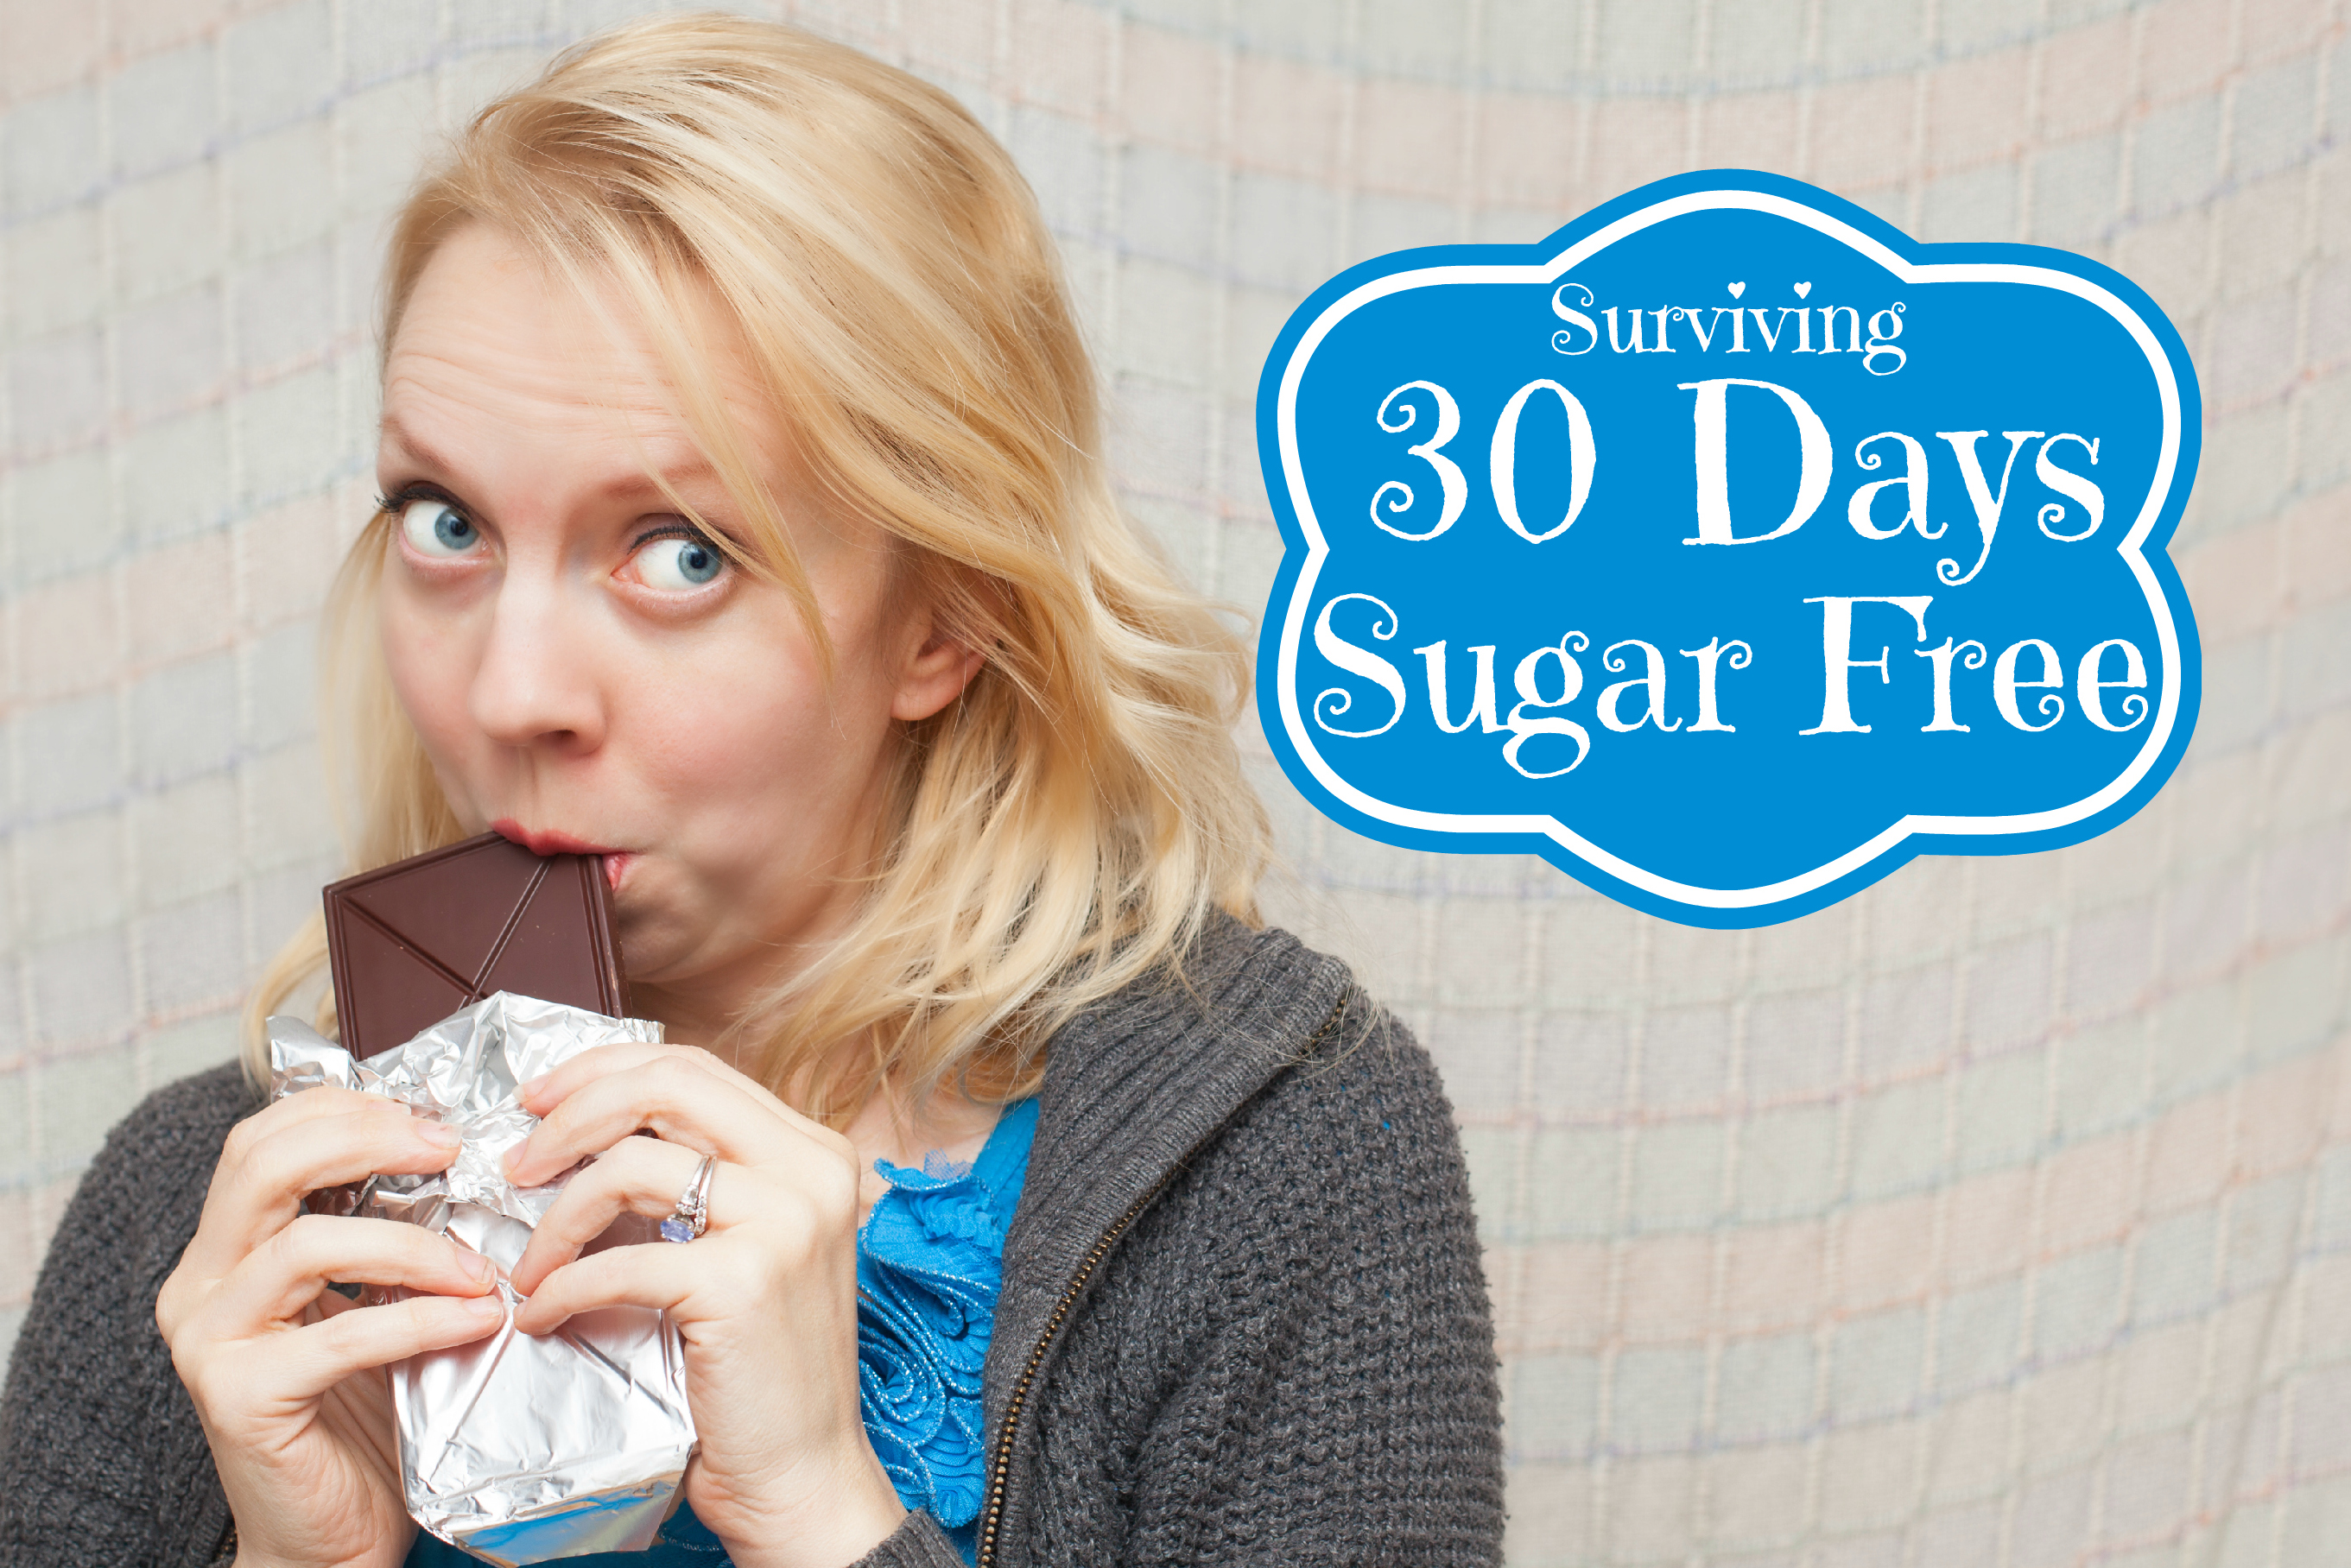 Surviving 30 Days Sugar Free (Part 1)